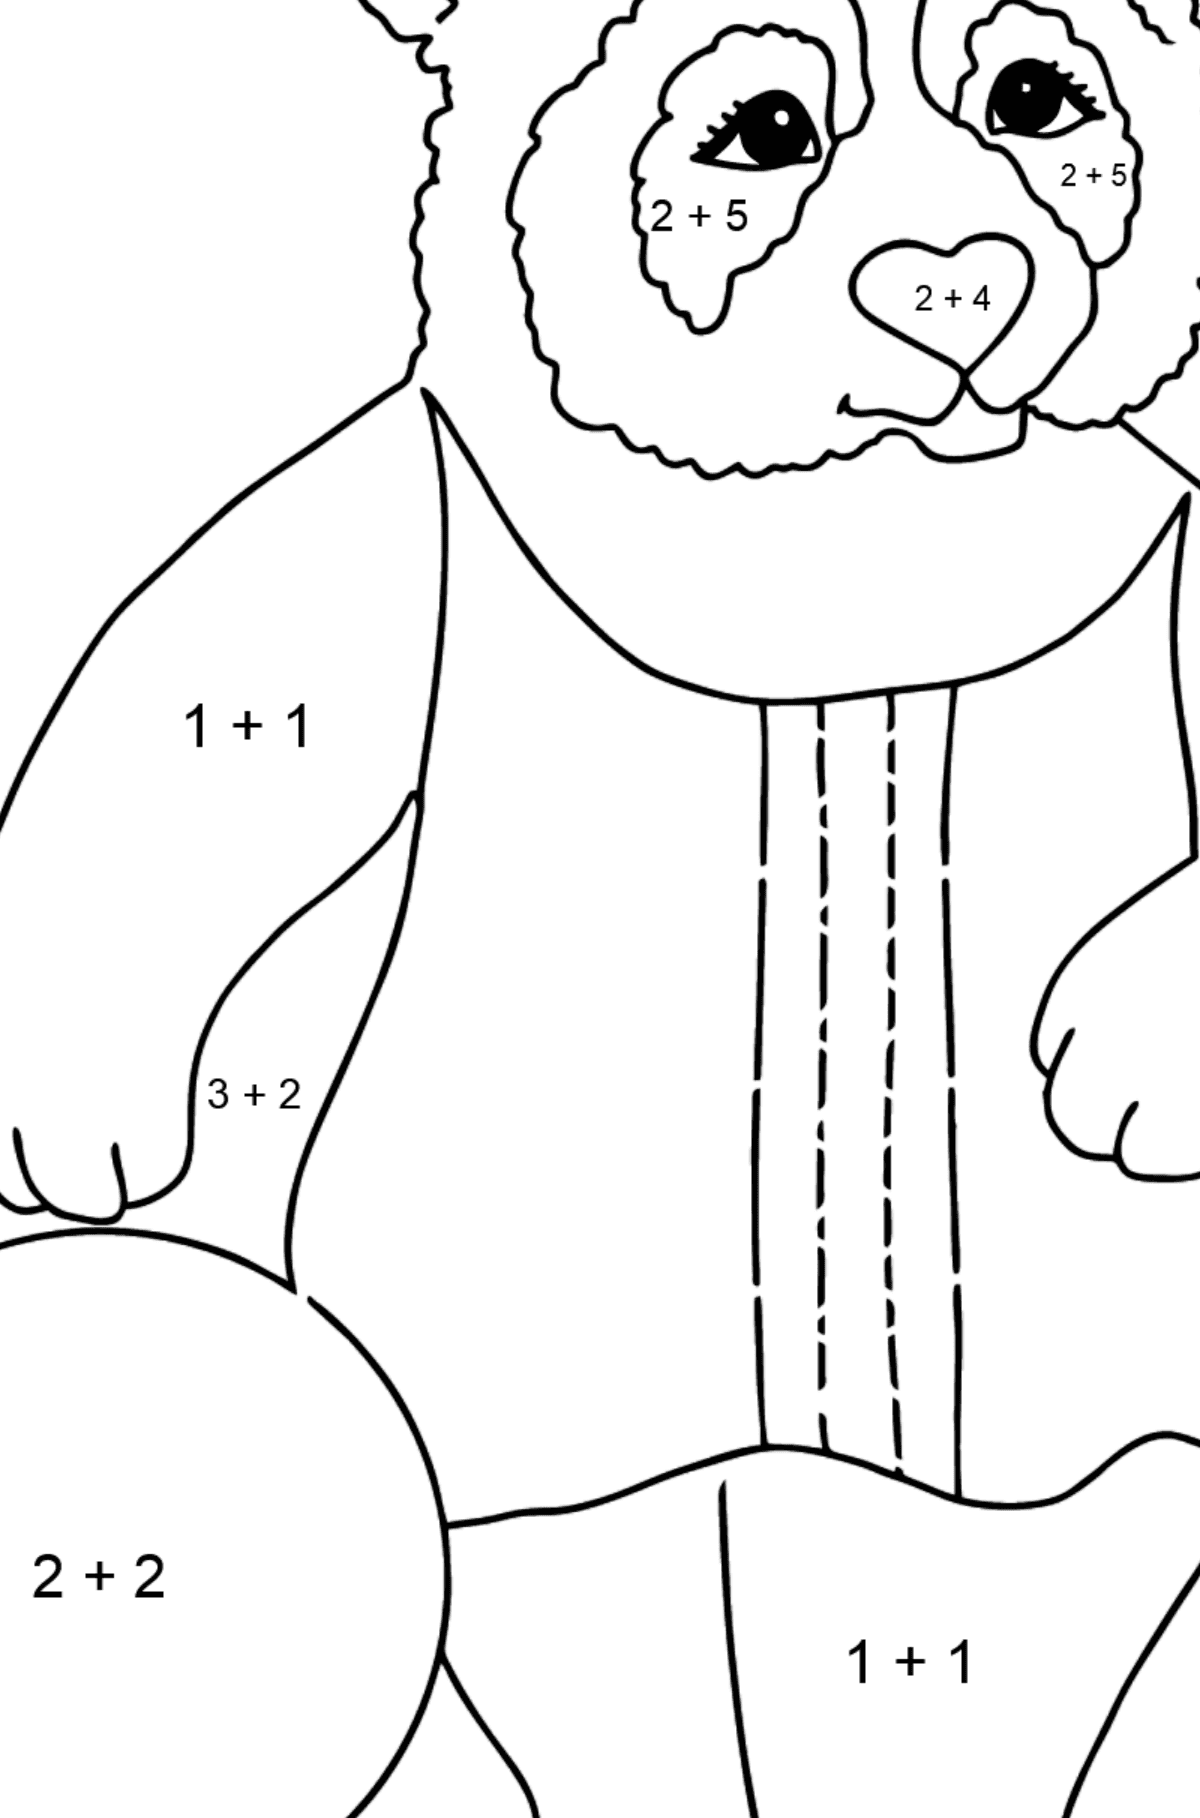 Coloring Picture - A Panda is Playing Ball - Math Coloring - Addition for Kids